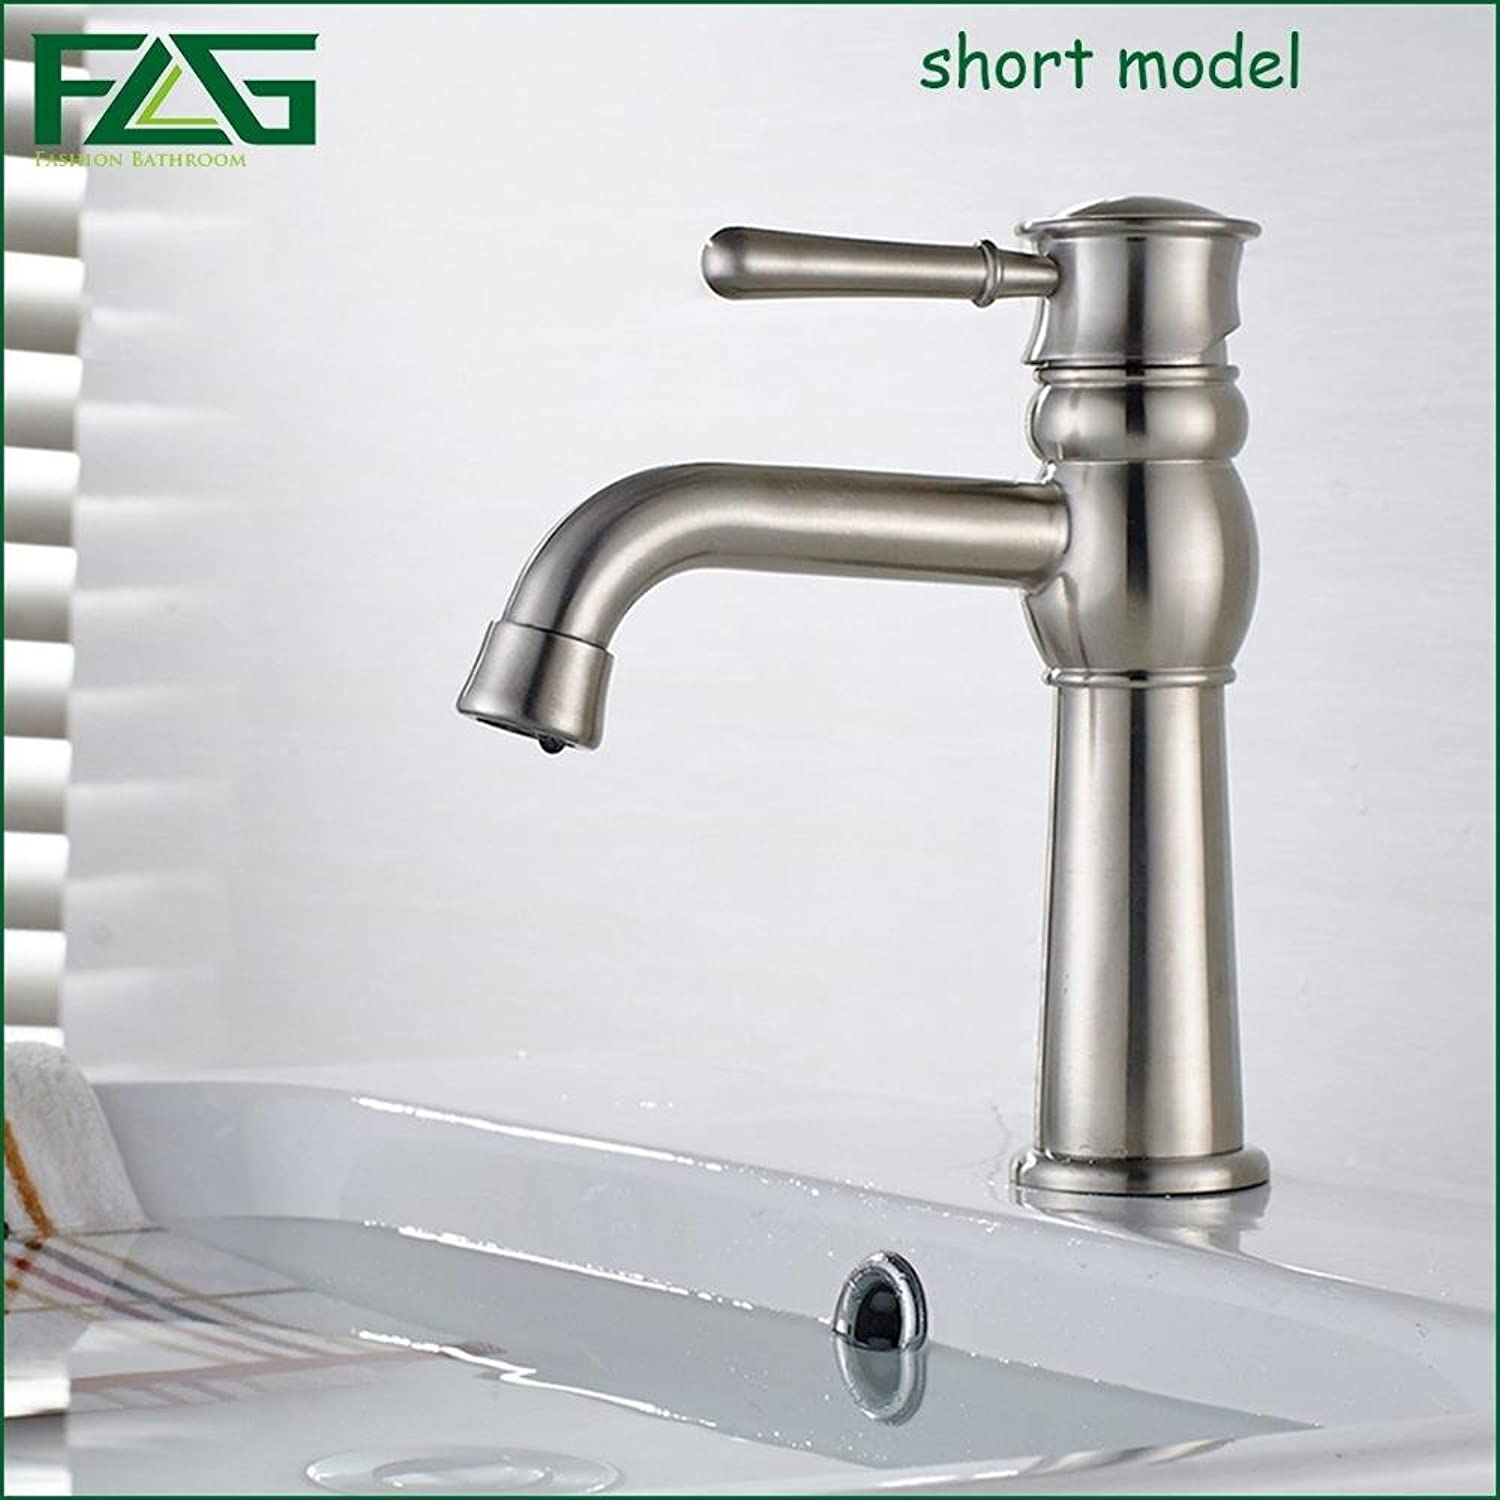 Maifeini ?New Bathroom Heat From The Deck Of The Cold?304?Stainless Steel Sinks Faucets??Heat Sink Faucet Polish Nickel Water Mixer?, White